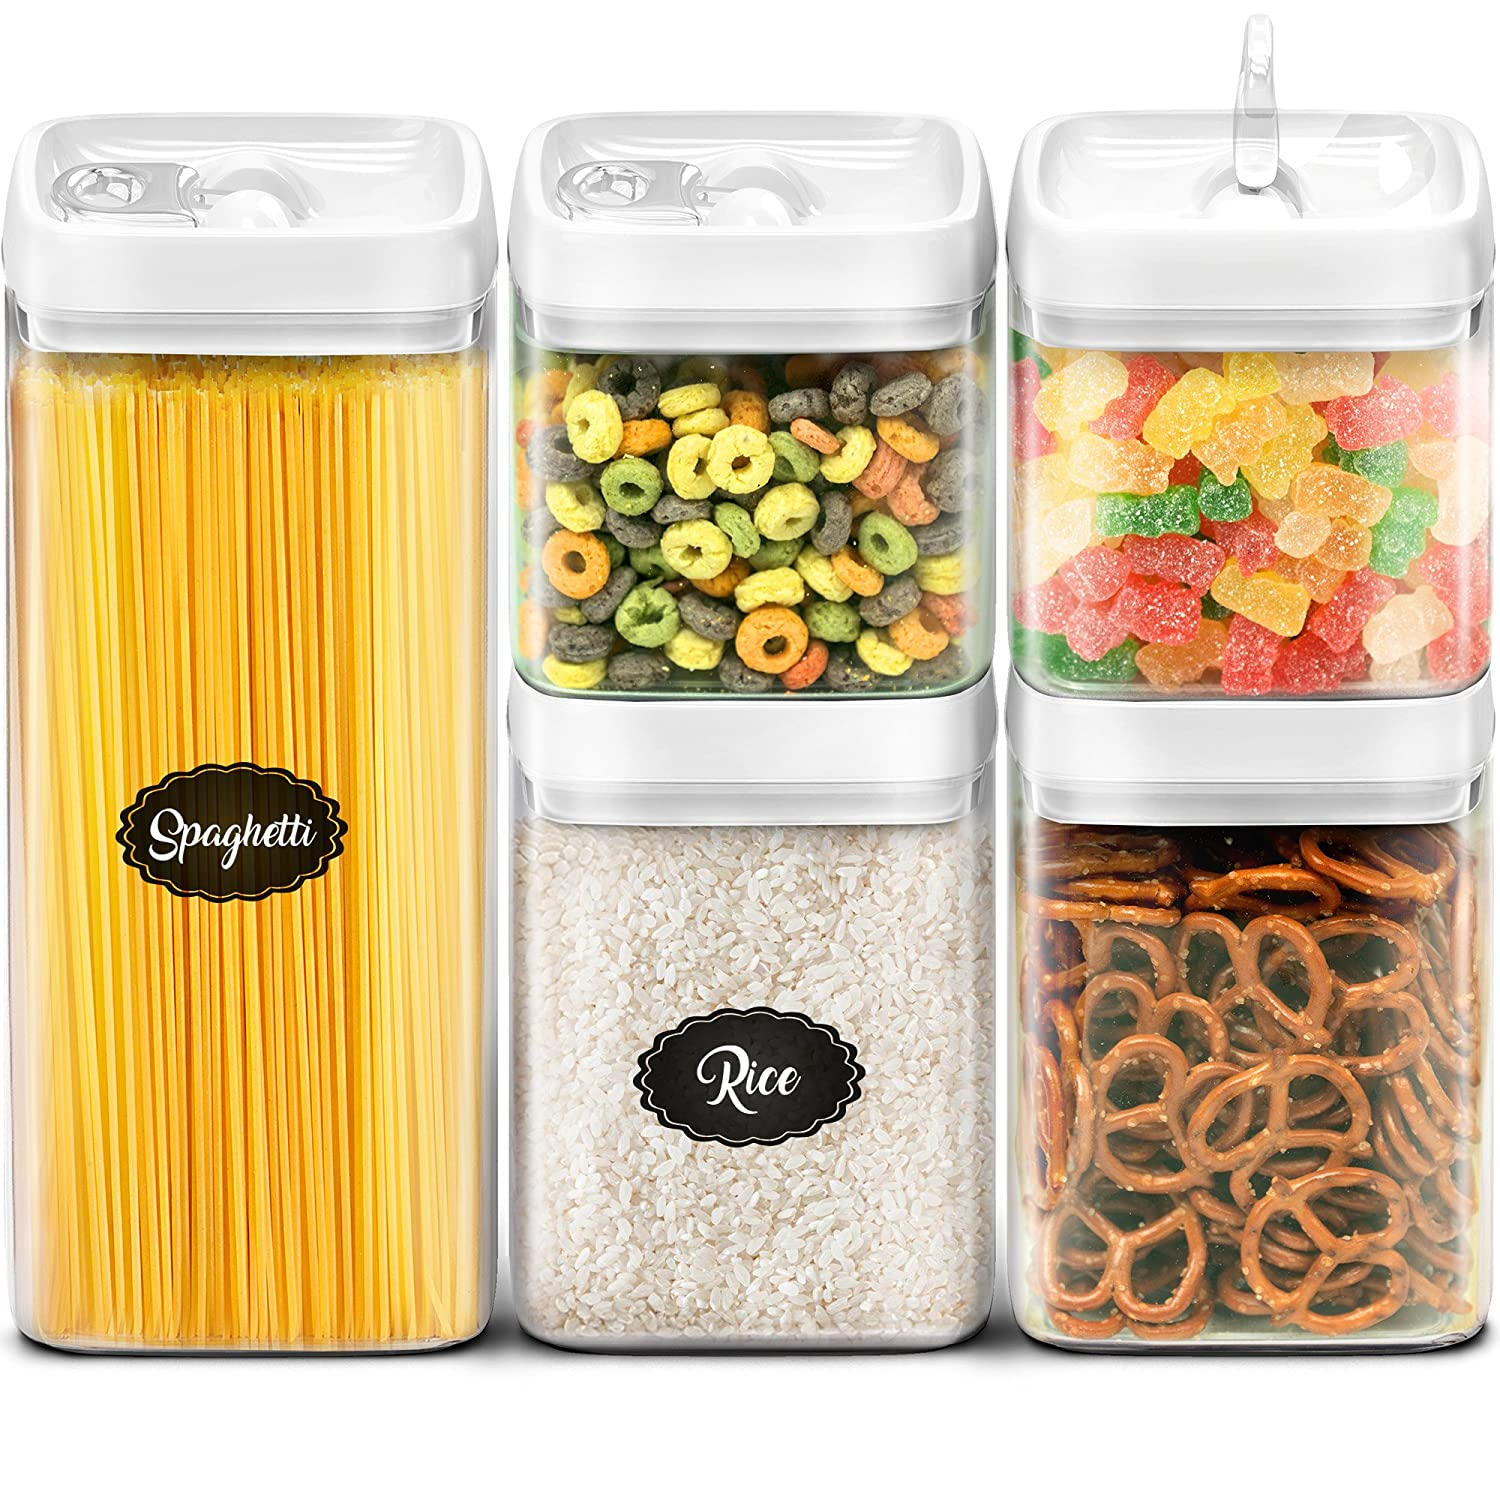 Airtight Food Storage Containers with Lids - Canister Set for the Kitchen -  BPA Free Clear Plastic Cereal Storage Containers - Best Extra Capacity Dry  ...